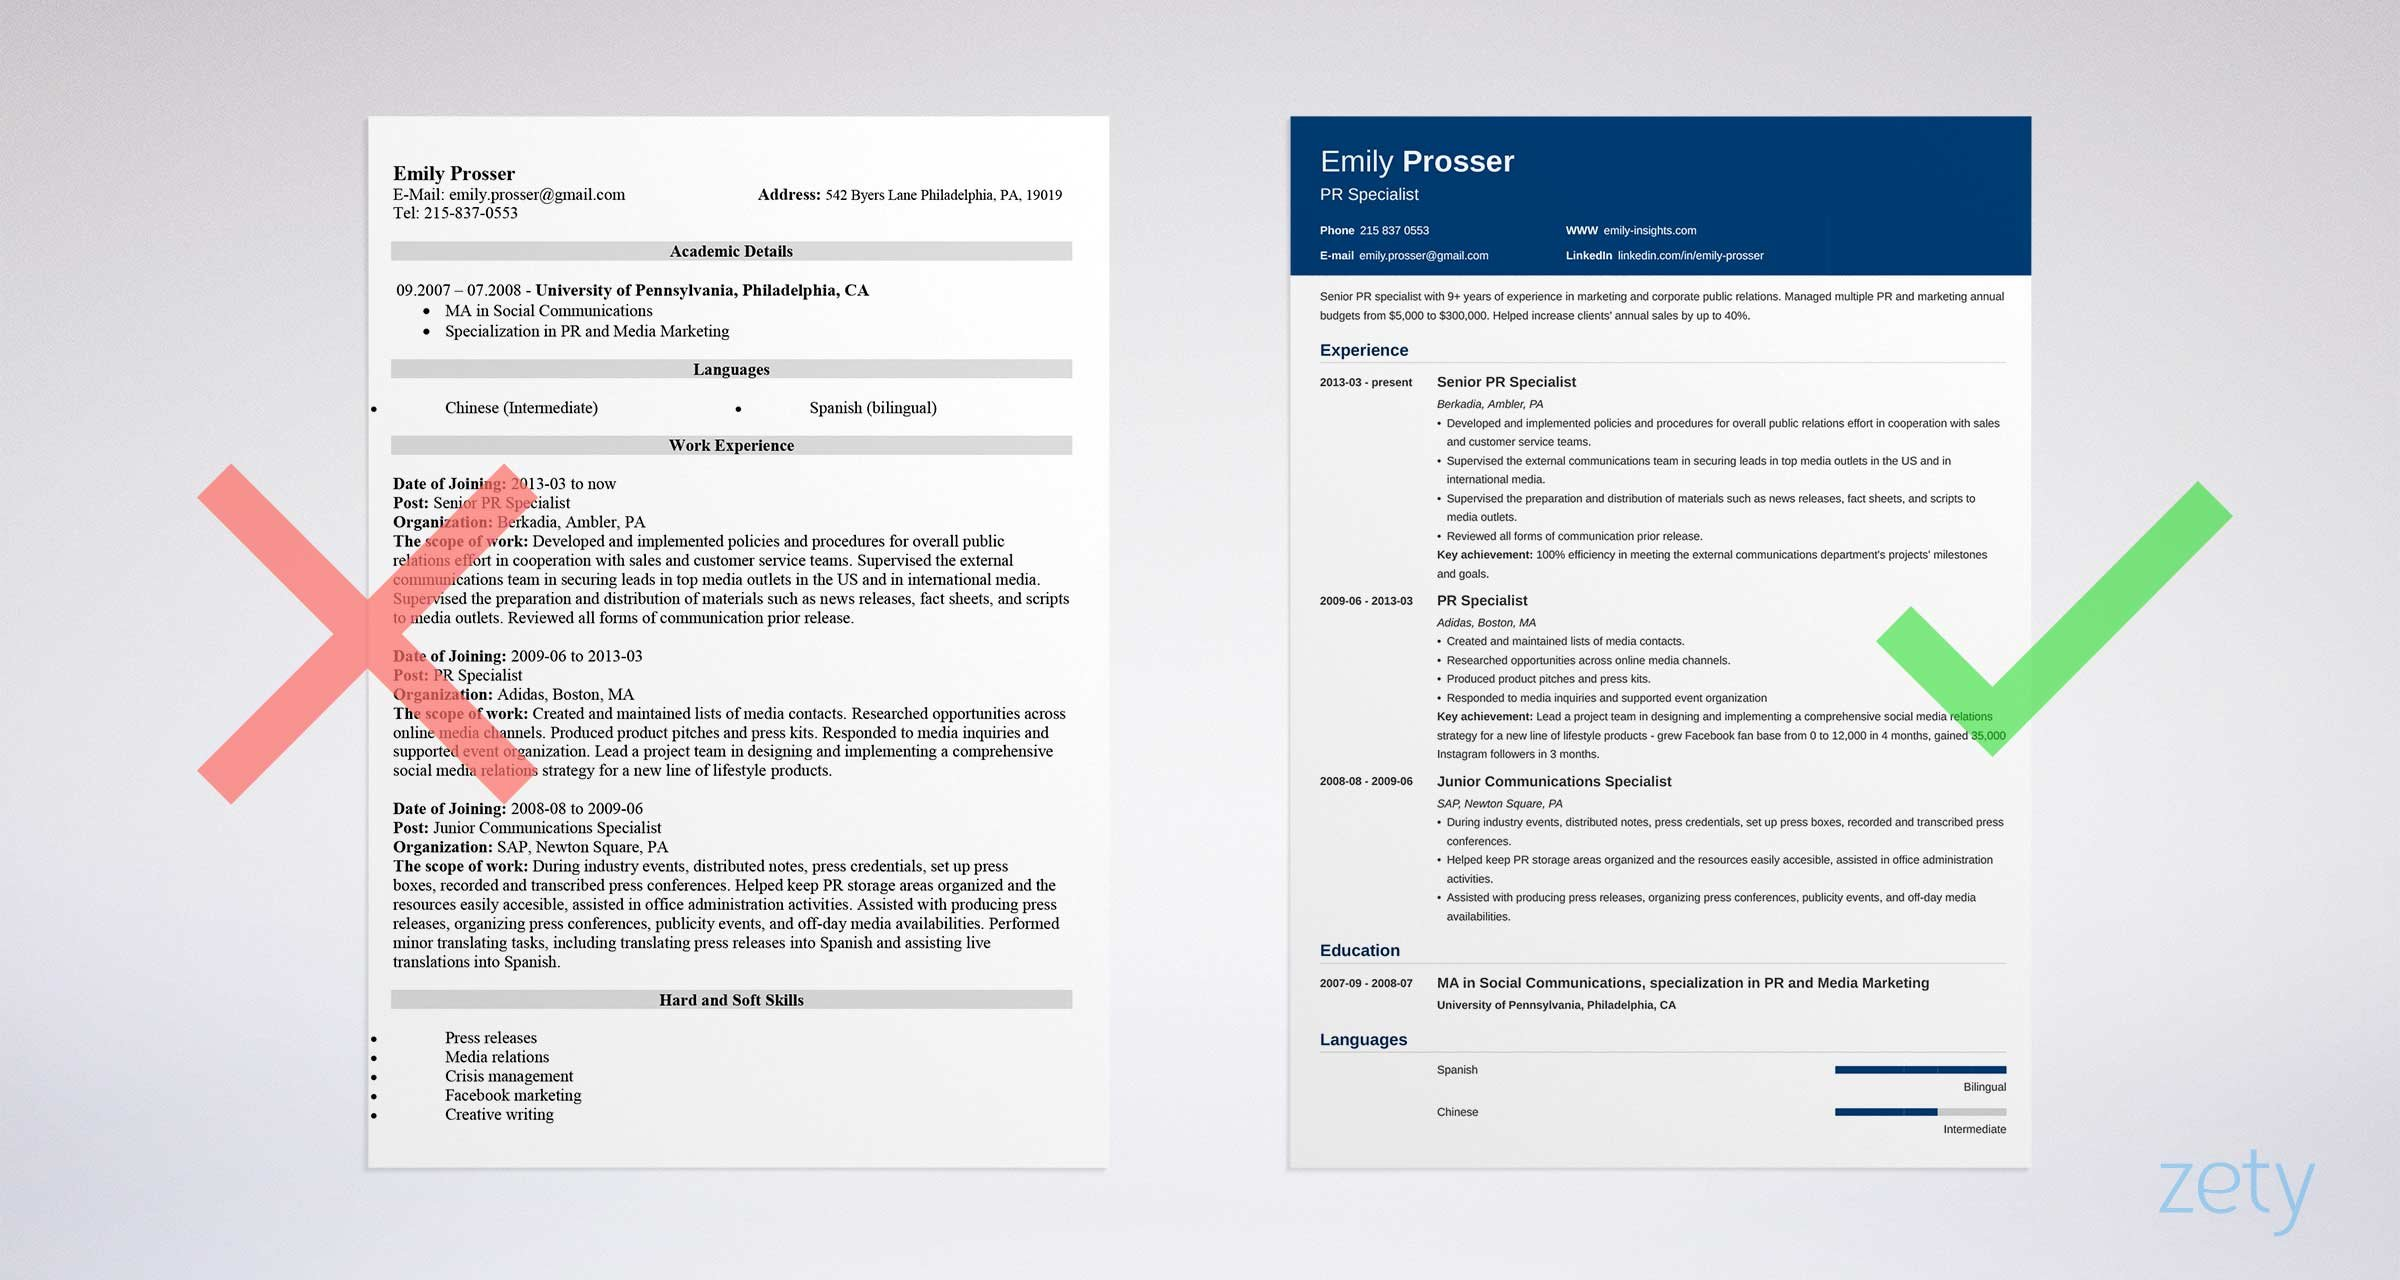 15 resume design ideas inspirations amp templates�howto